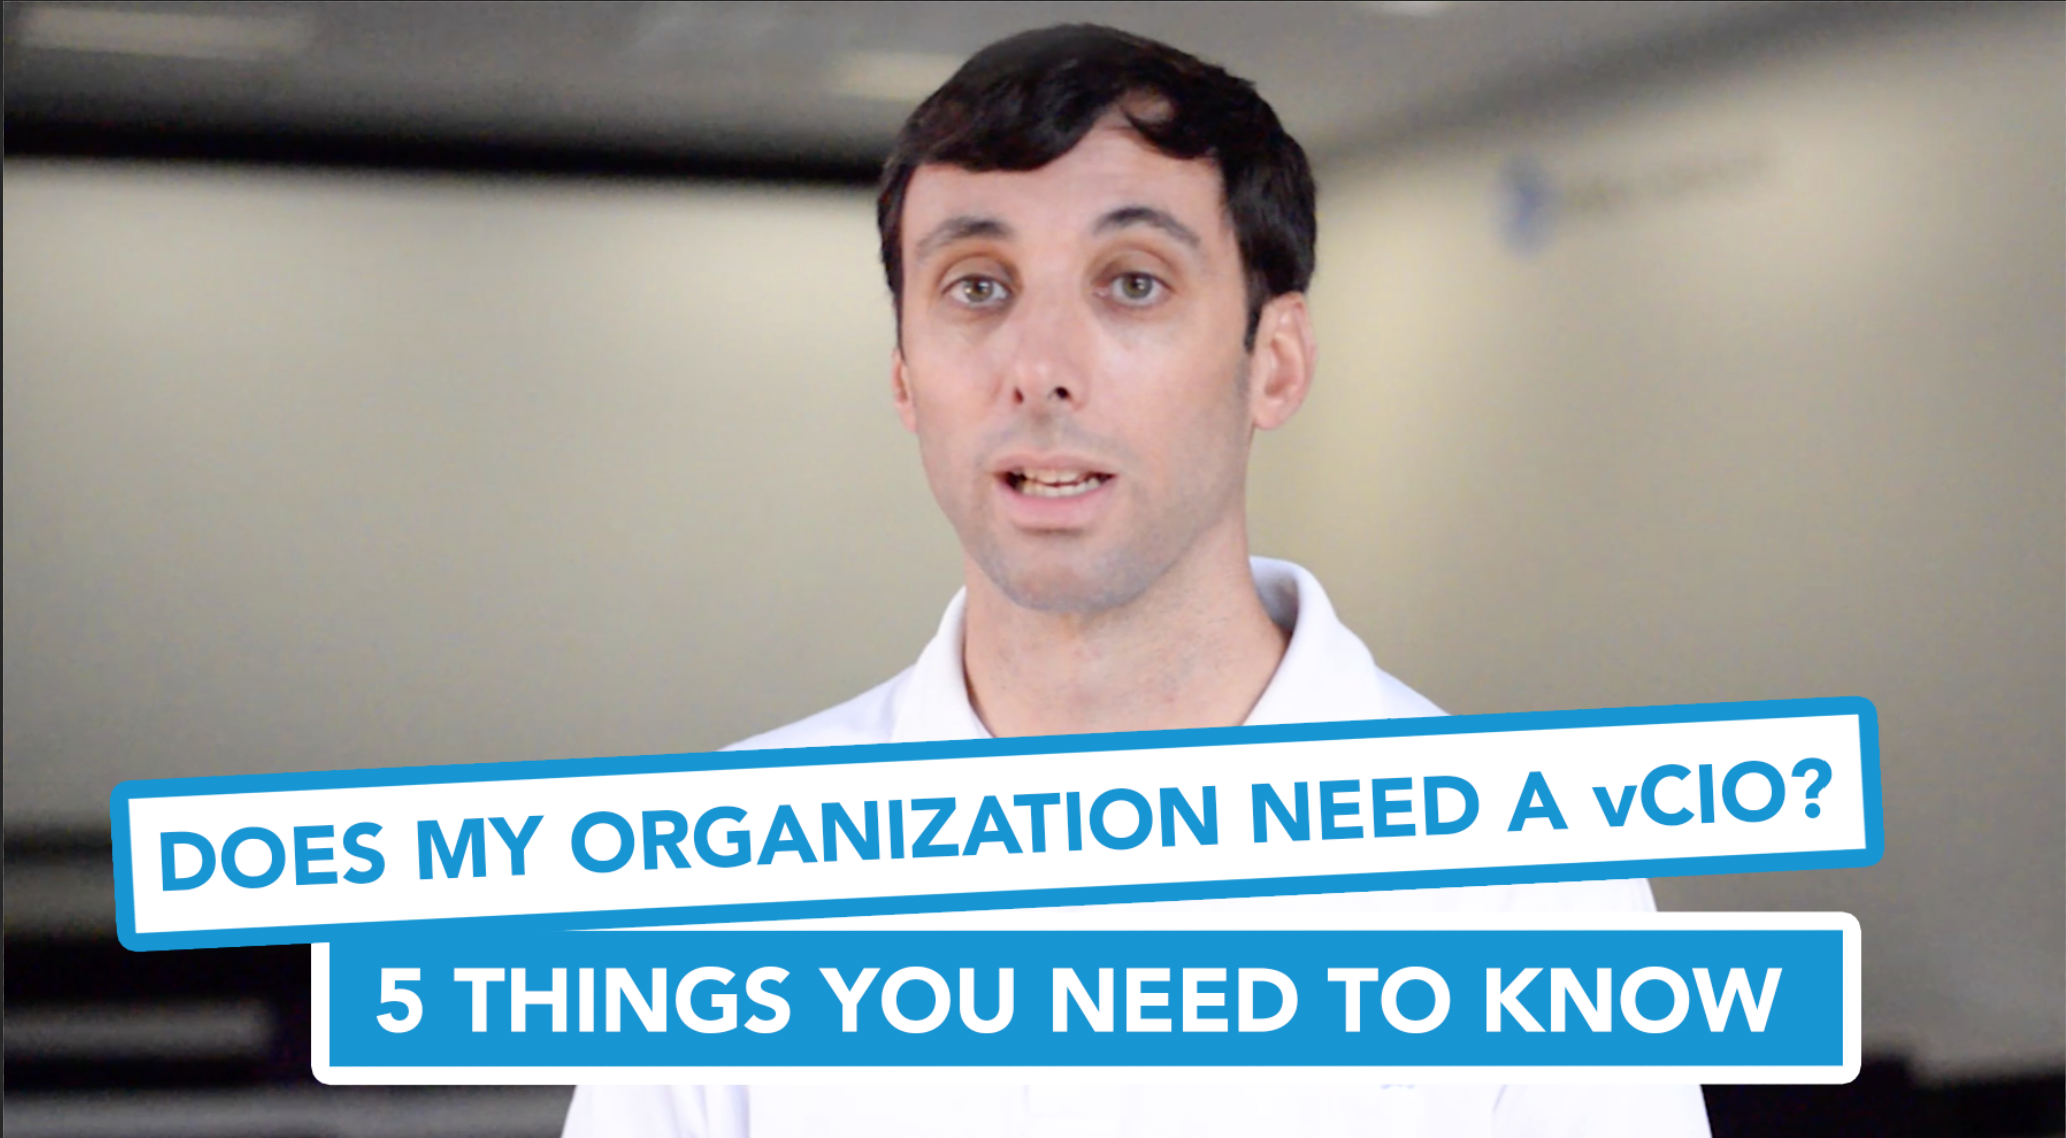 Does My Organization Need a vCIO? 5 Things You Need to Know